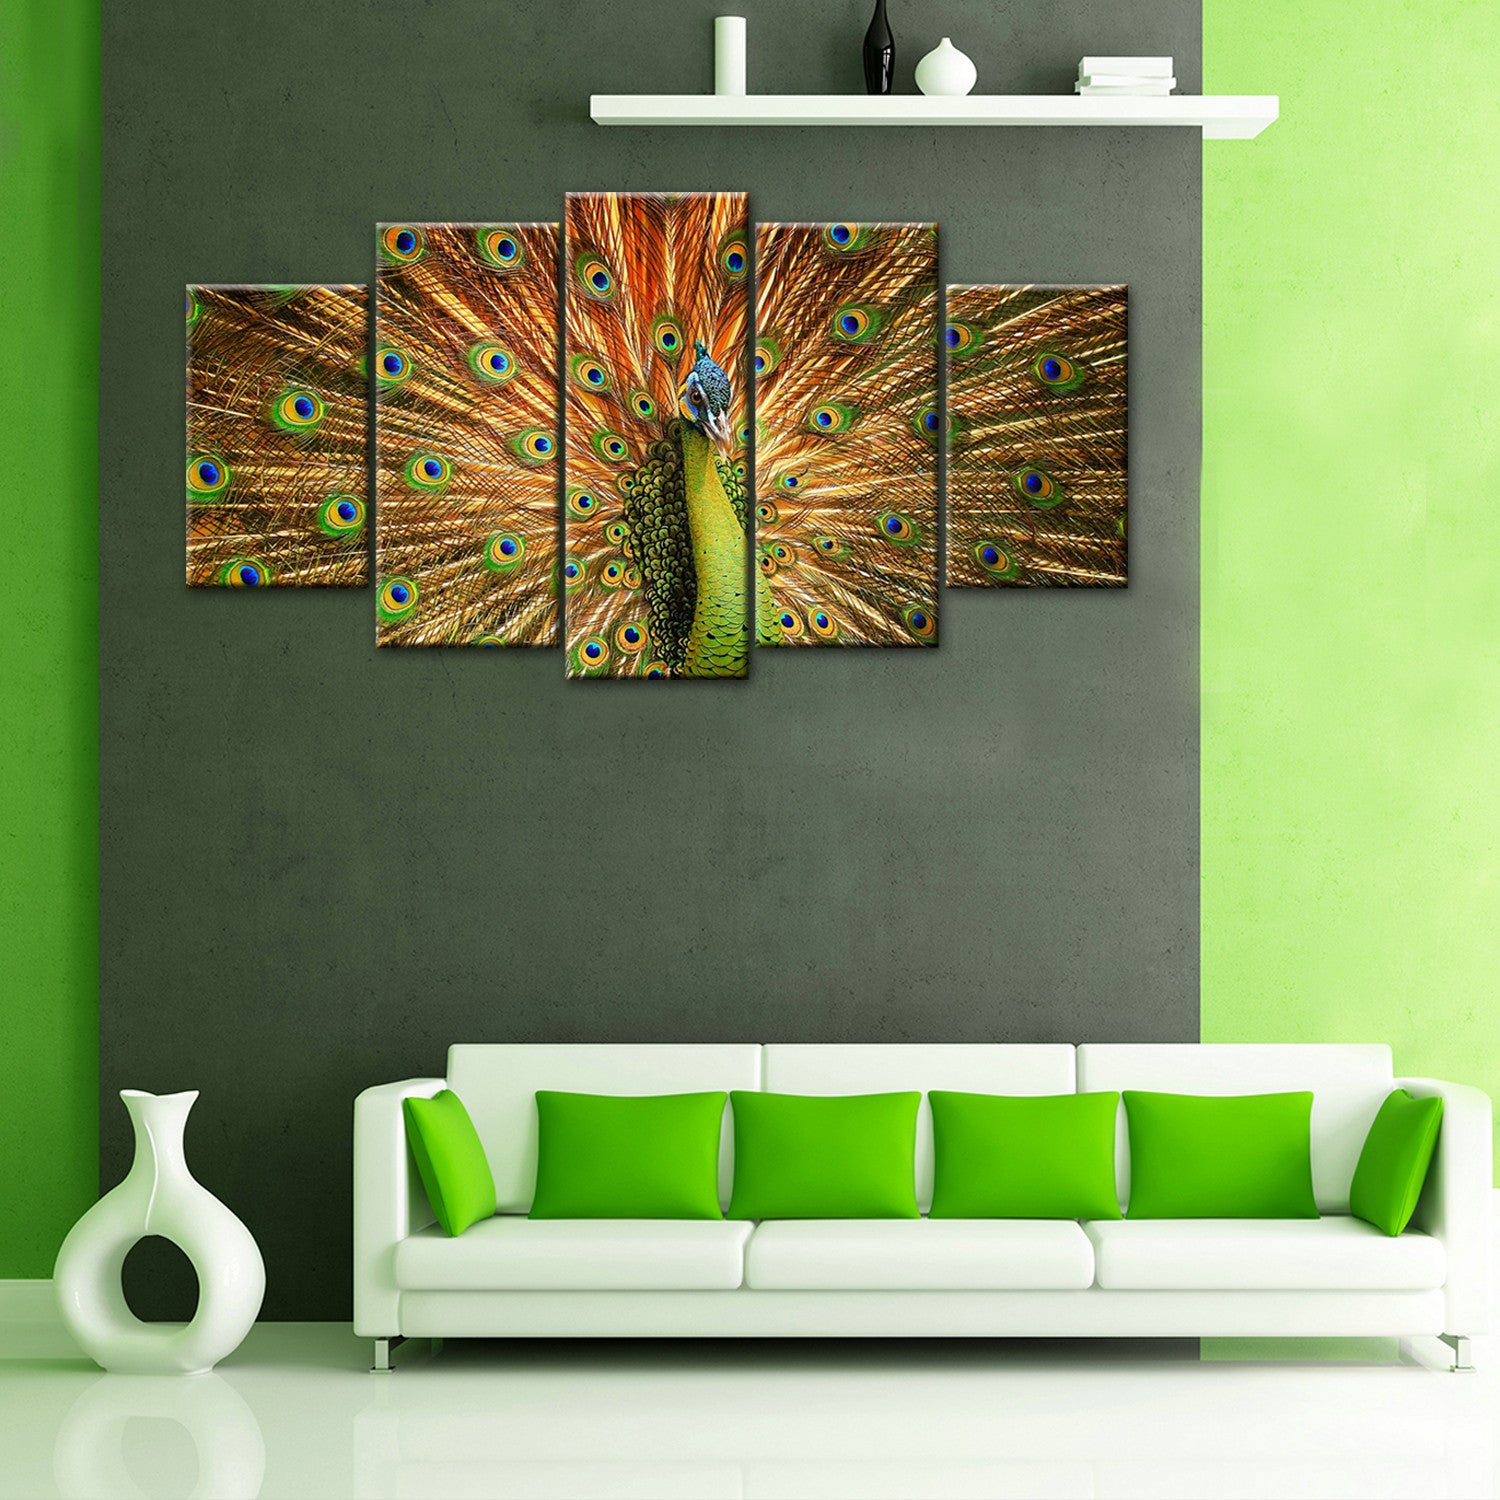 5 Pieces Beautiful Peacock Canvas Wall Art Home Decoration For Living Room - HD Quality